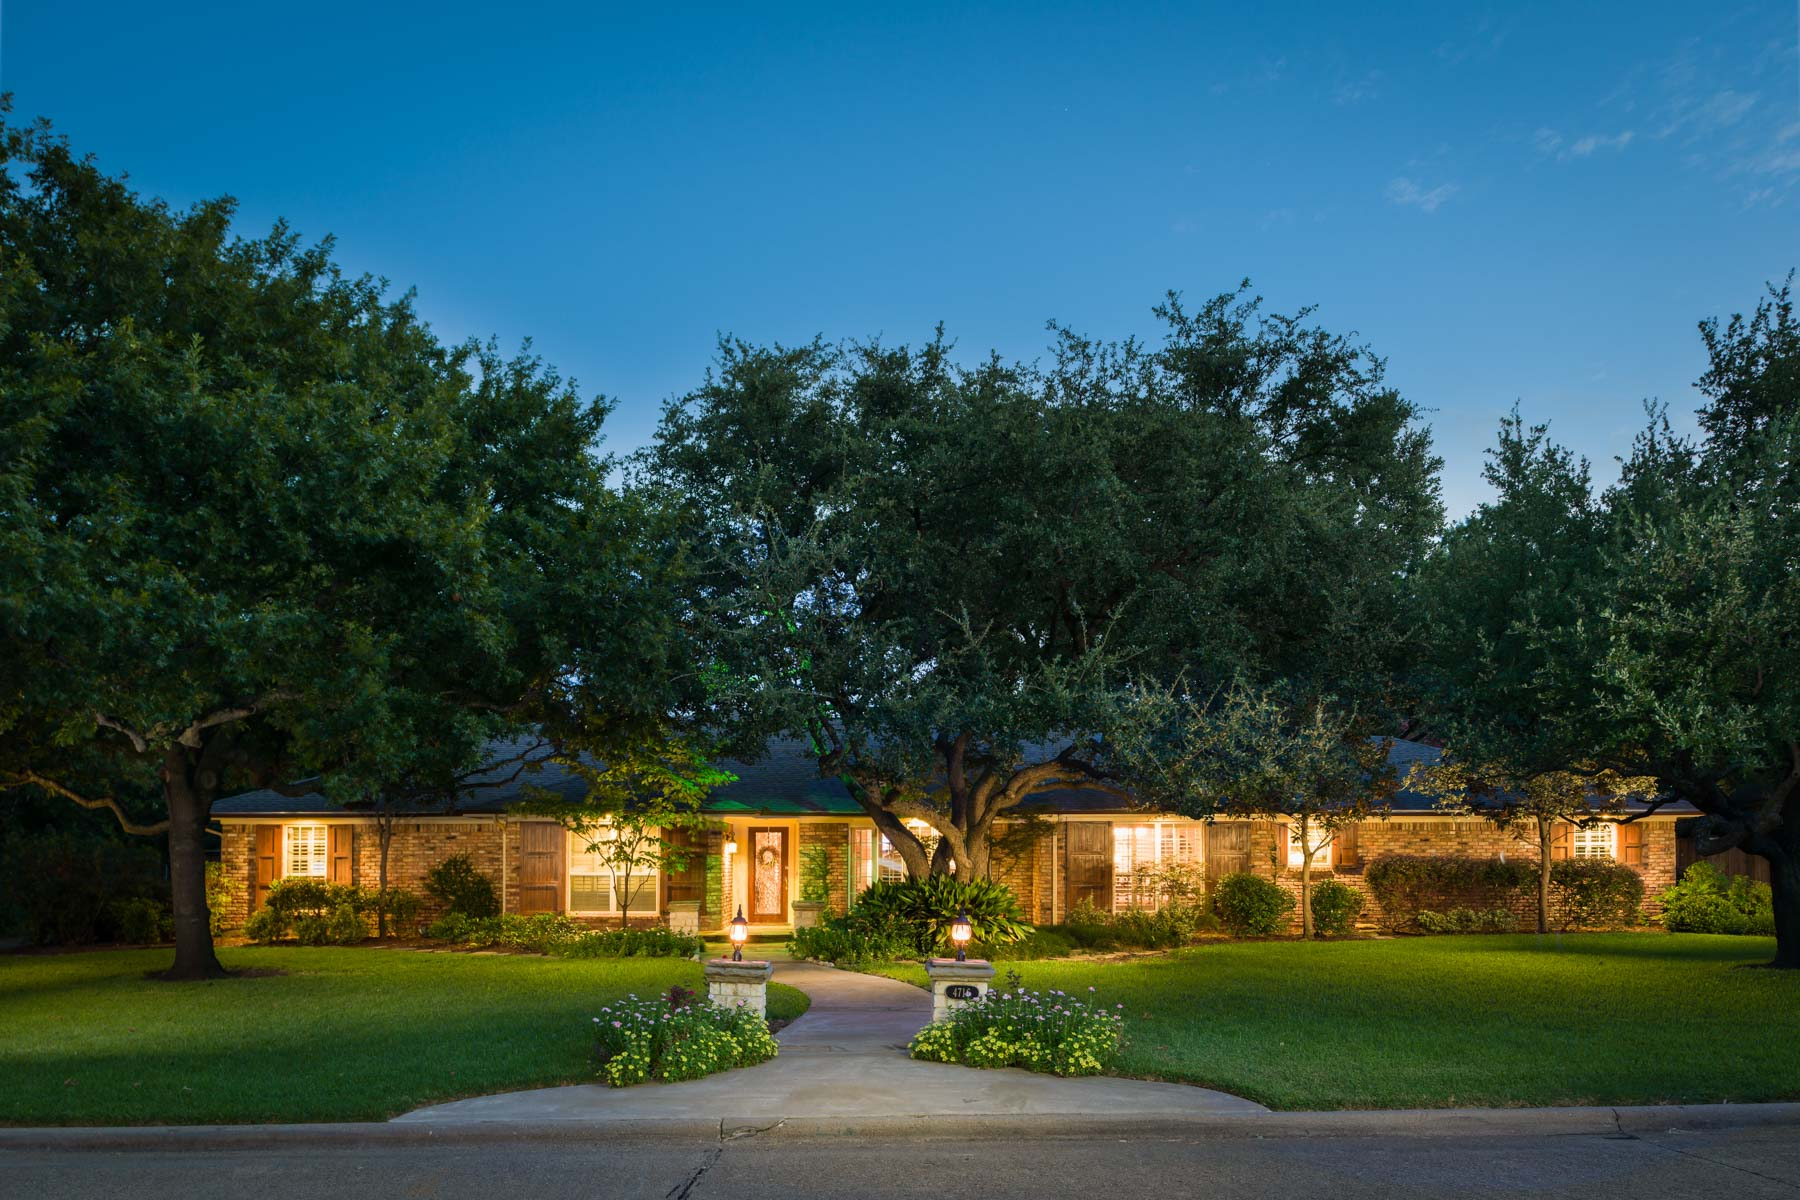 Single Family Home for Sale at Elegant Preston Hollow Home 4716 Twin Post Road Dallas, Texas, 75244 United States